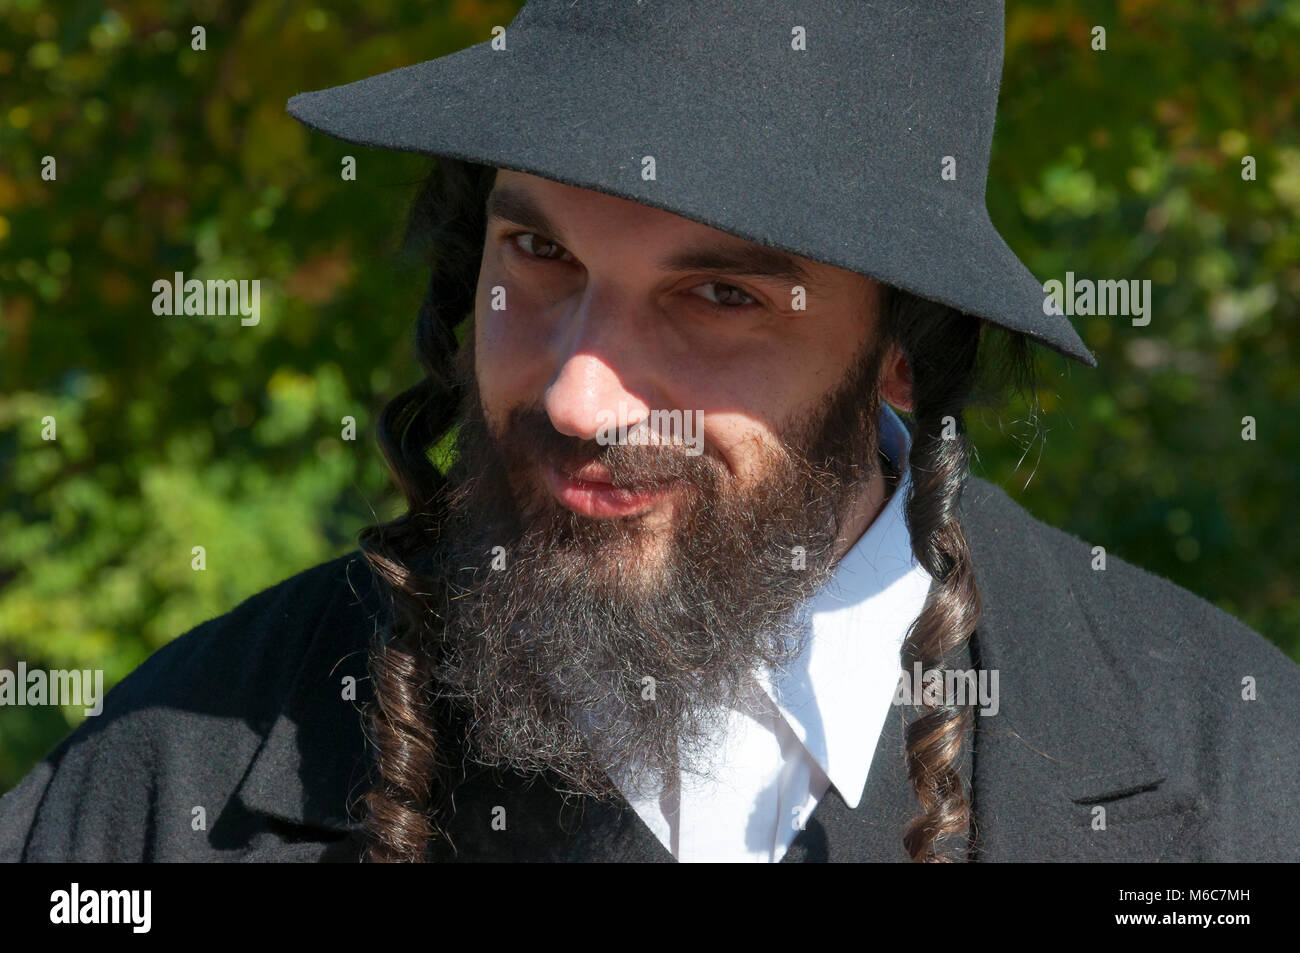 b1a505ff41e Outdoor sunny portrait of a smiling looking young orthodox Jewish man with black  beard and hat